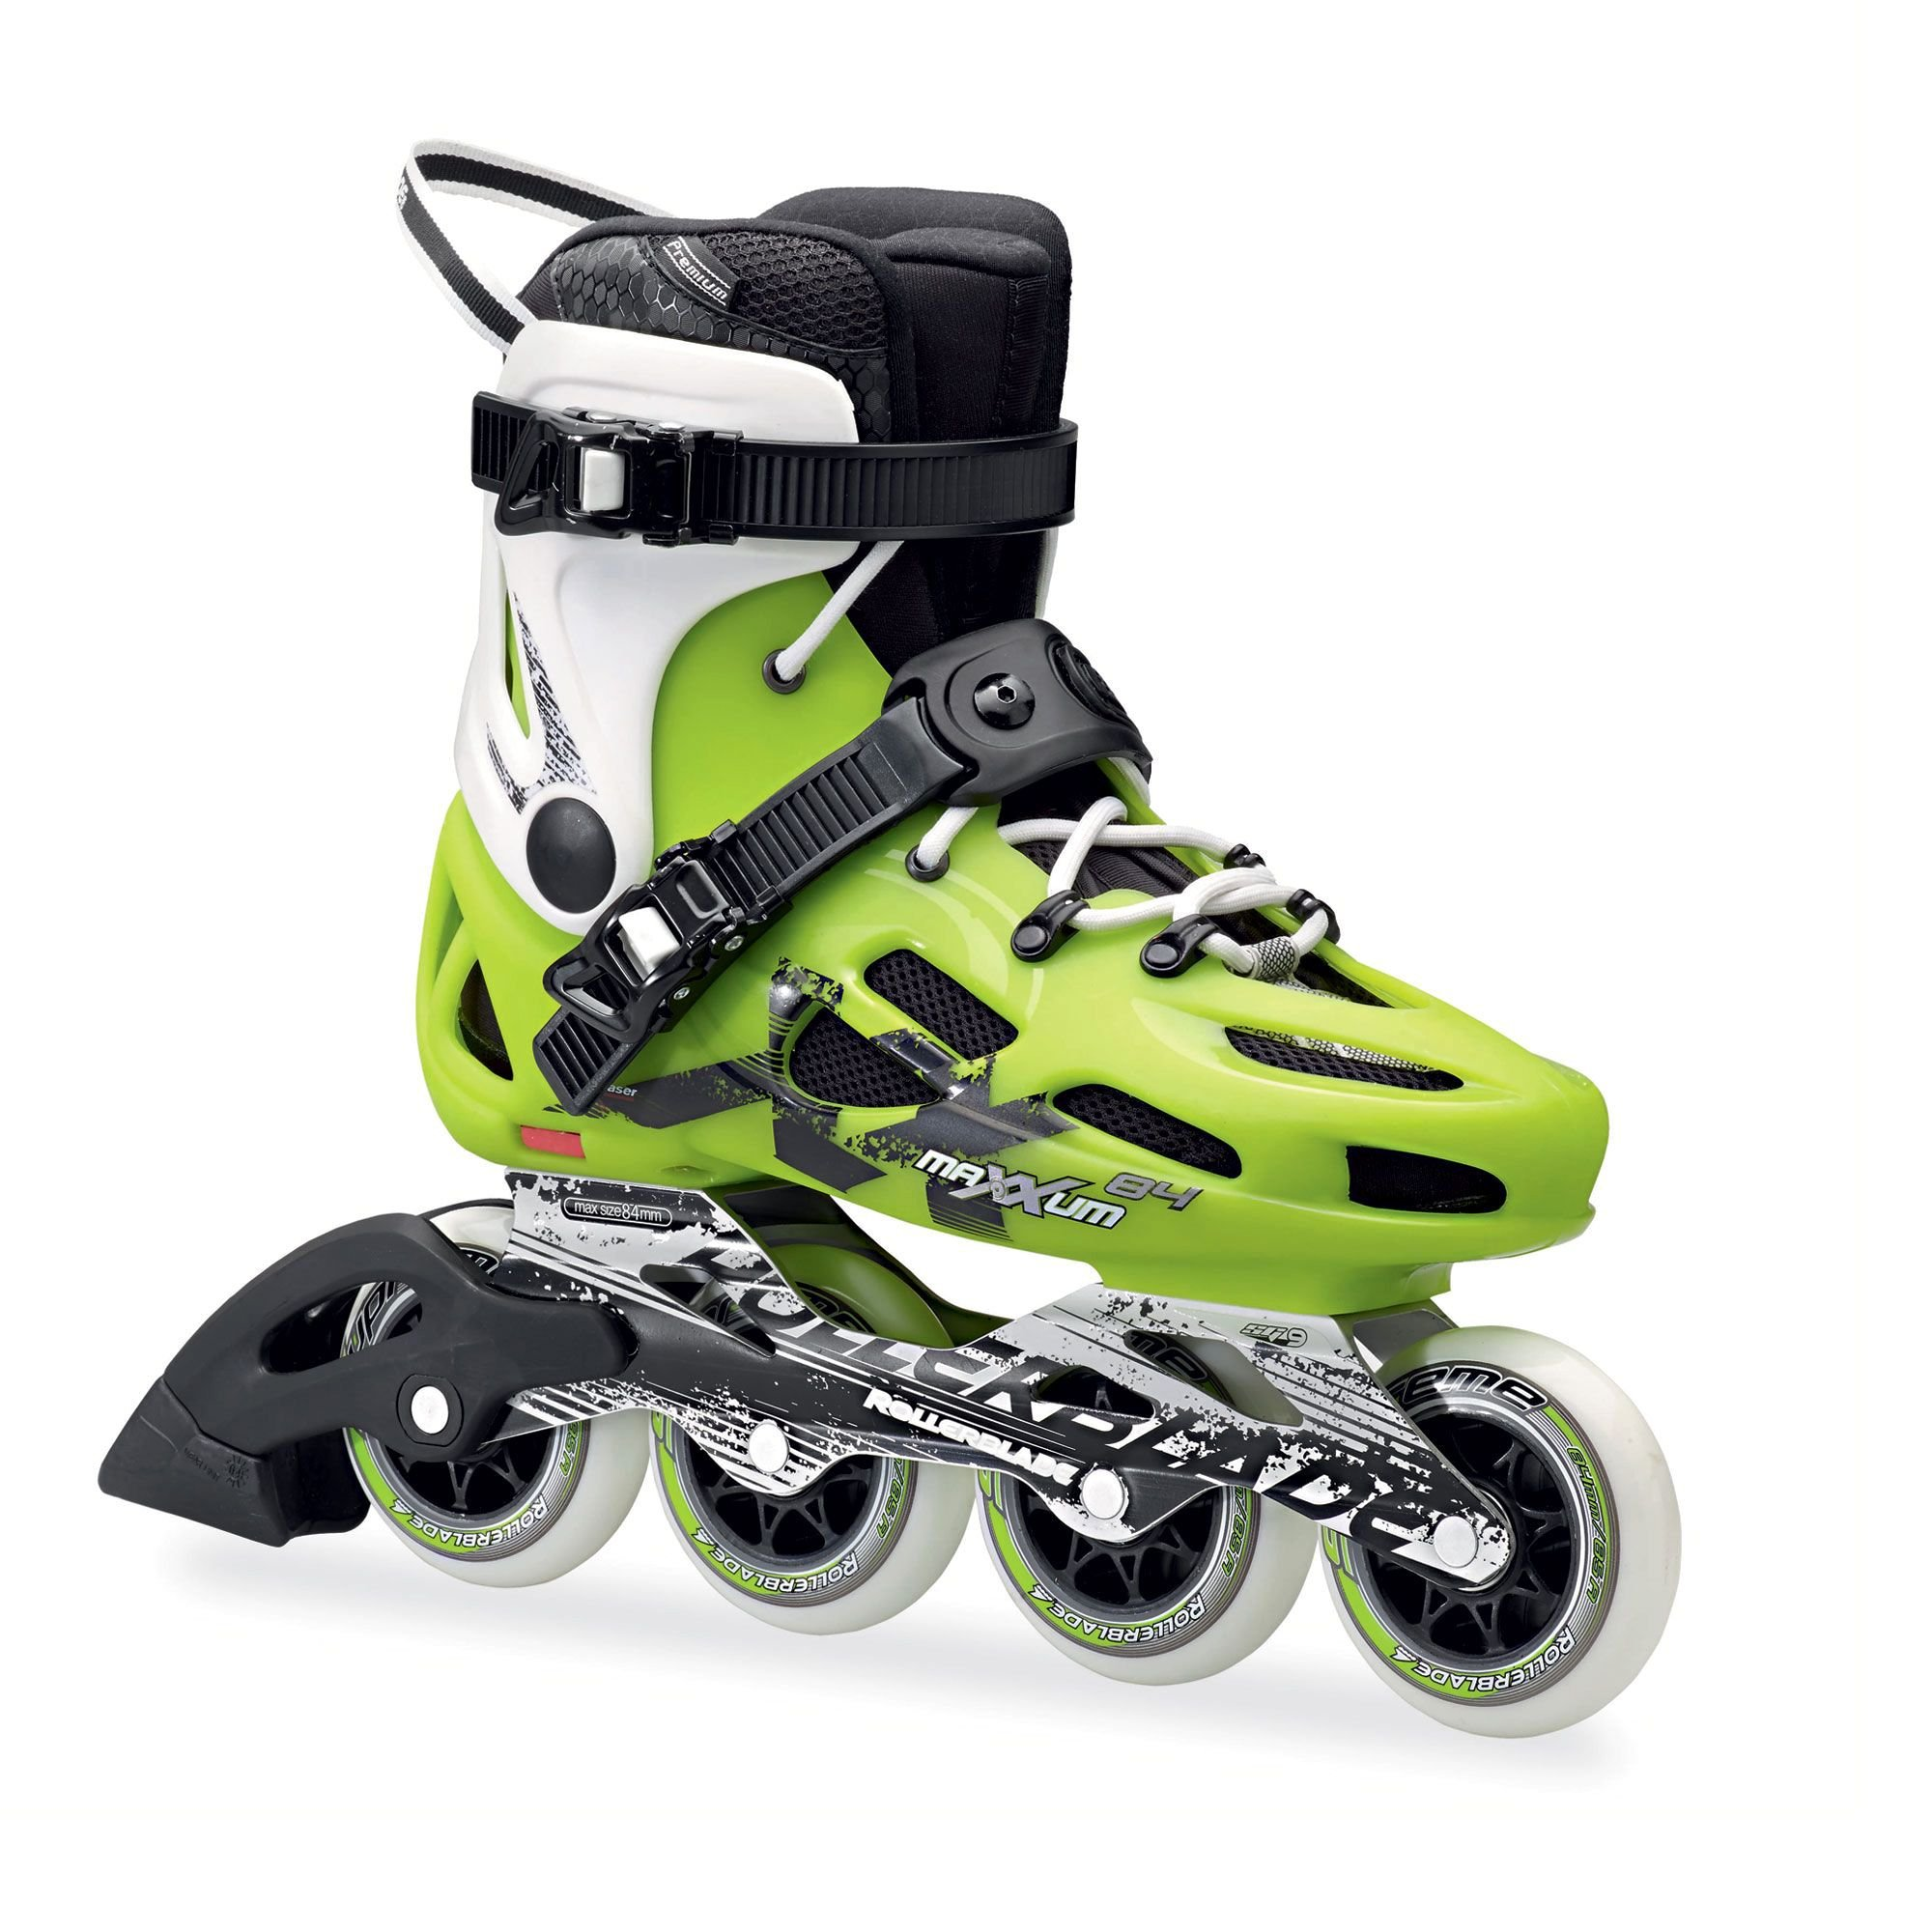 Rollerblade Men's Maxxum 84 Skates Green 29.5 & Headband Bundle